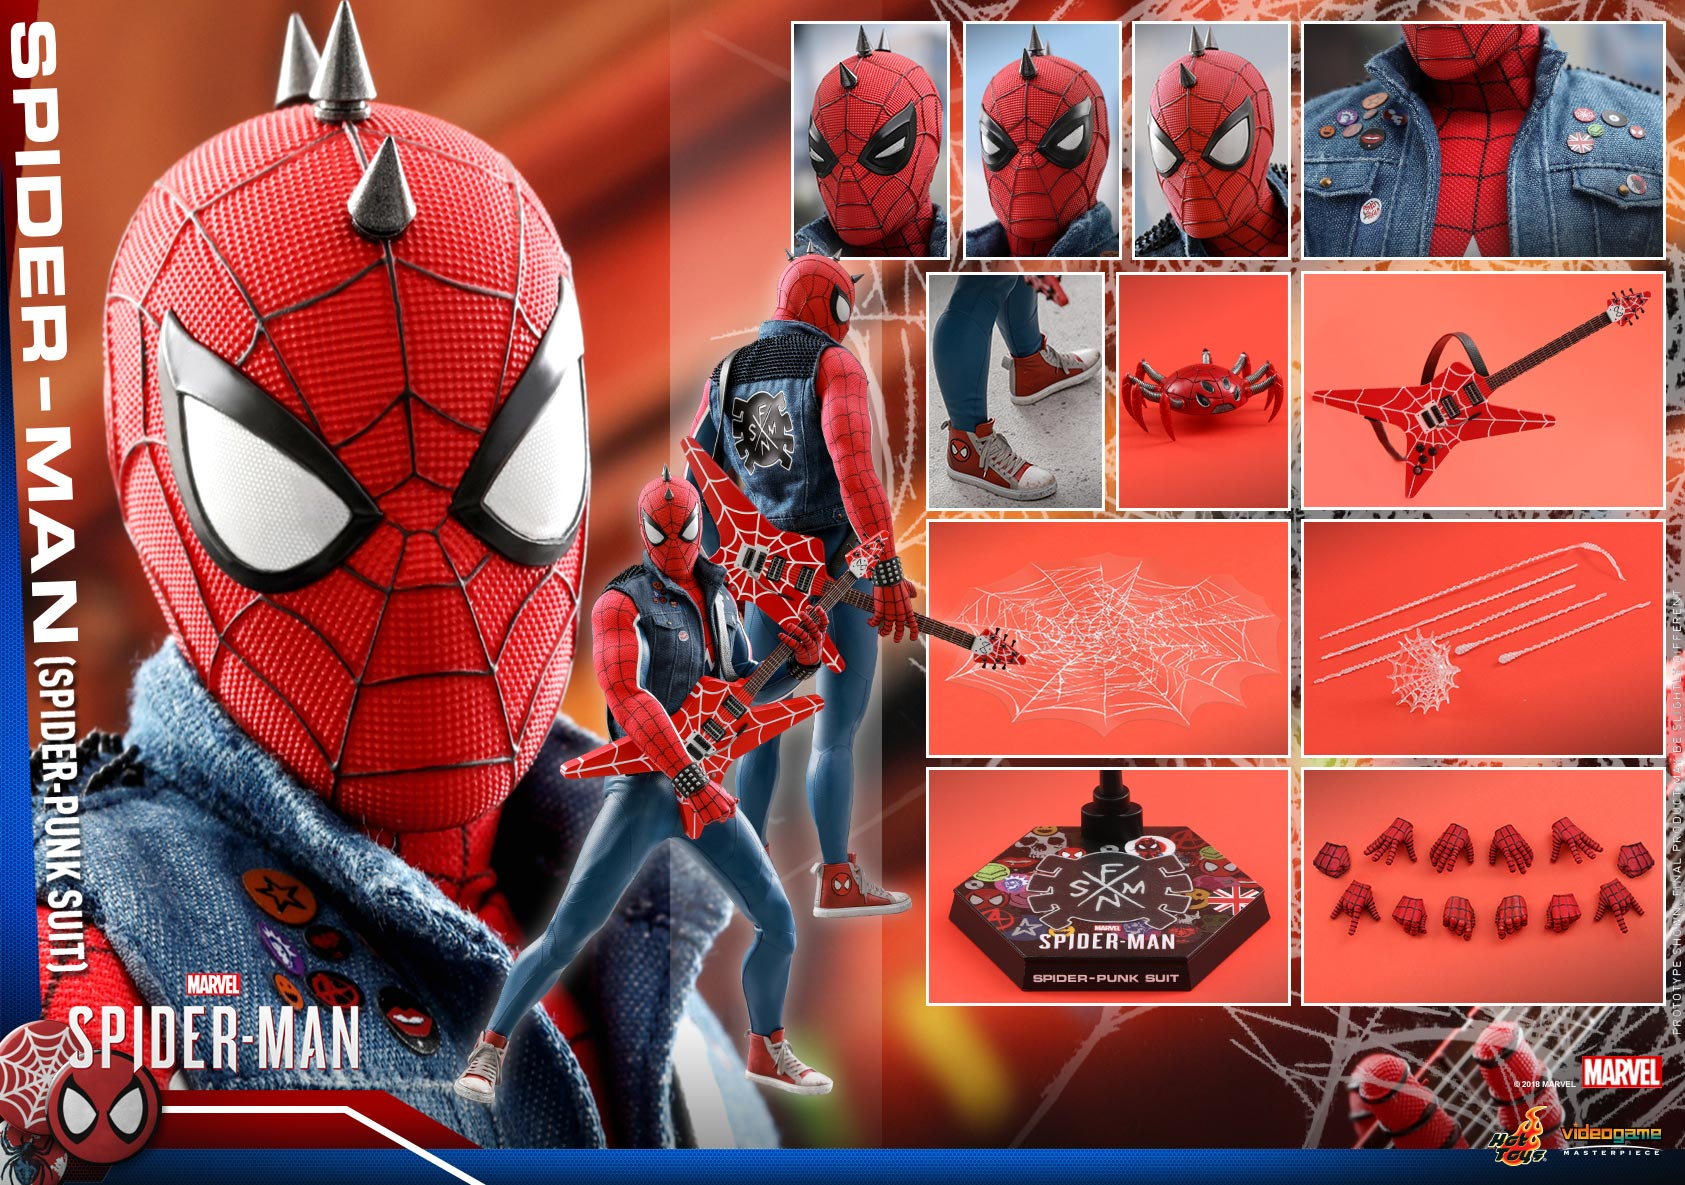 PS4_SPIDERMAN(SPIDER-PUNK)_H_Detail